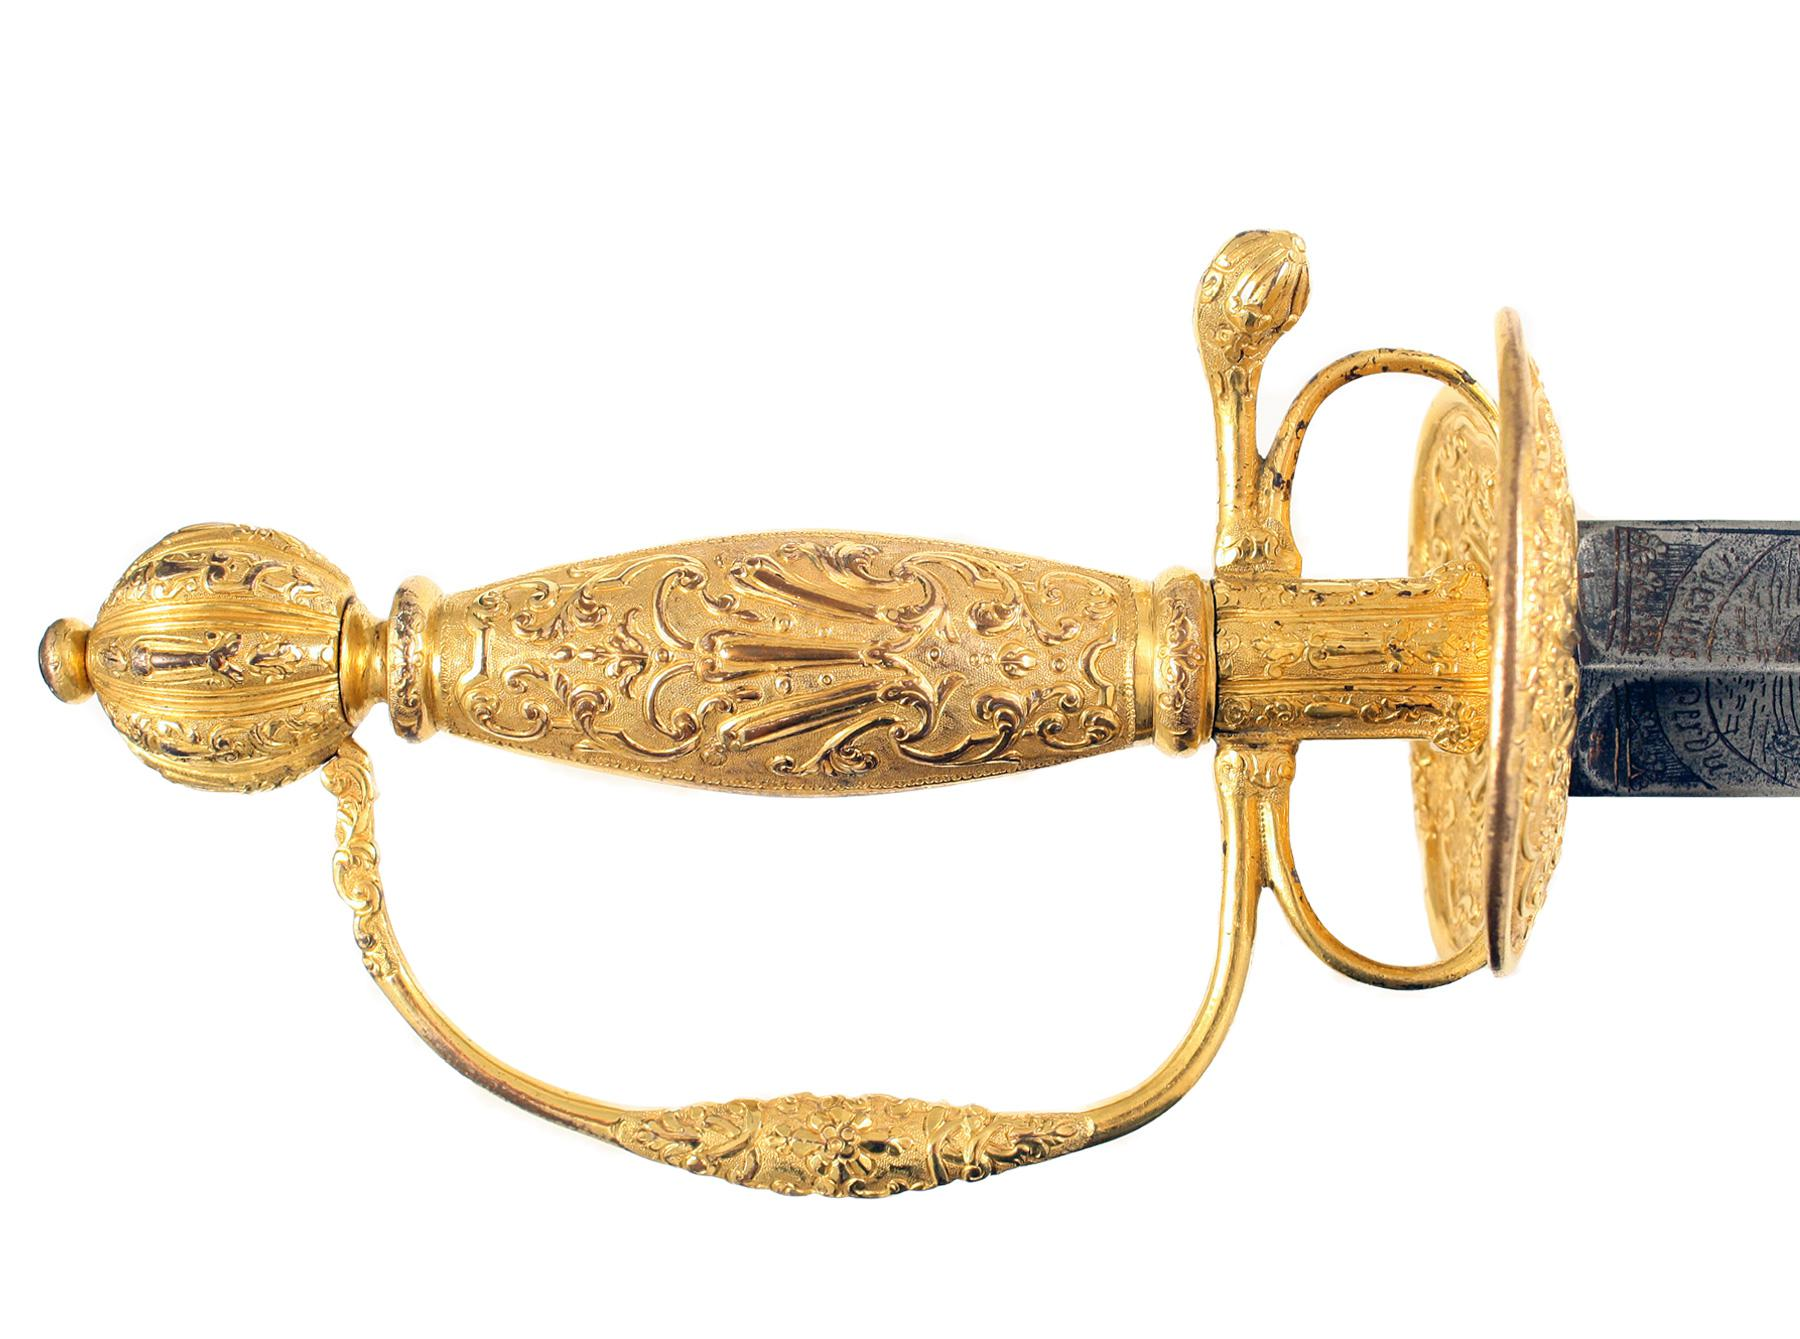 A Fine Gilt Smallsword